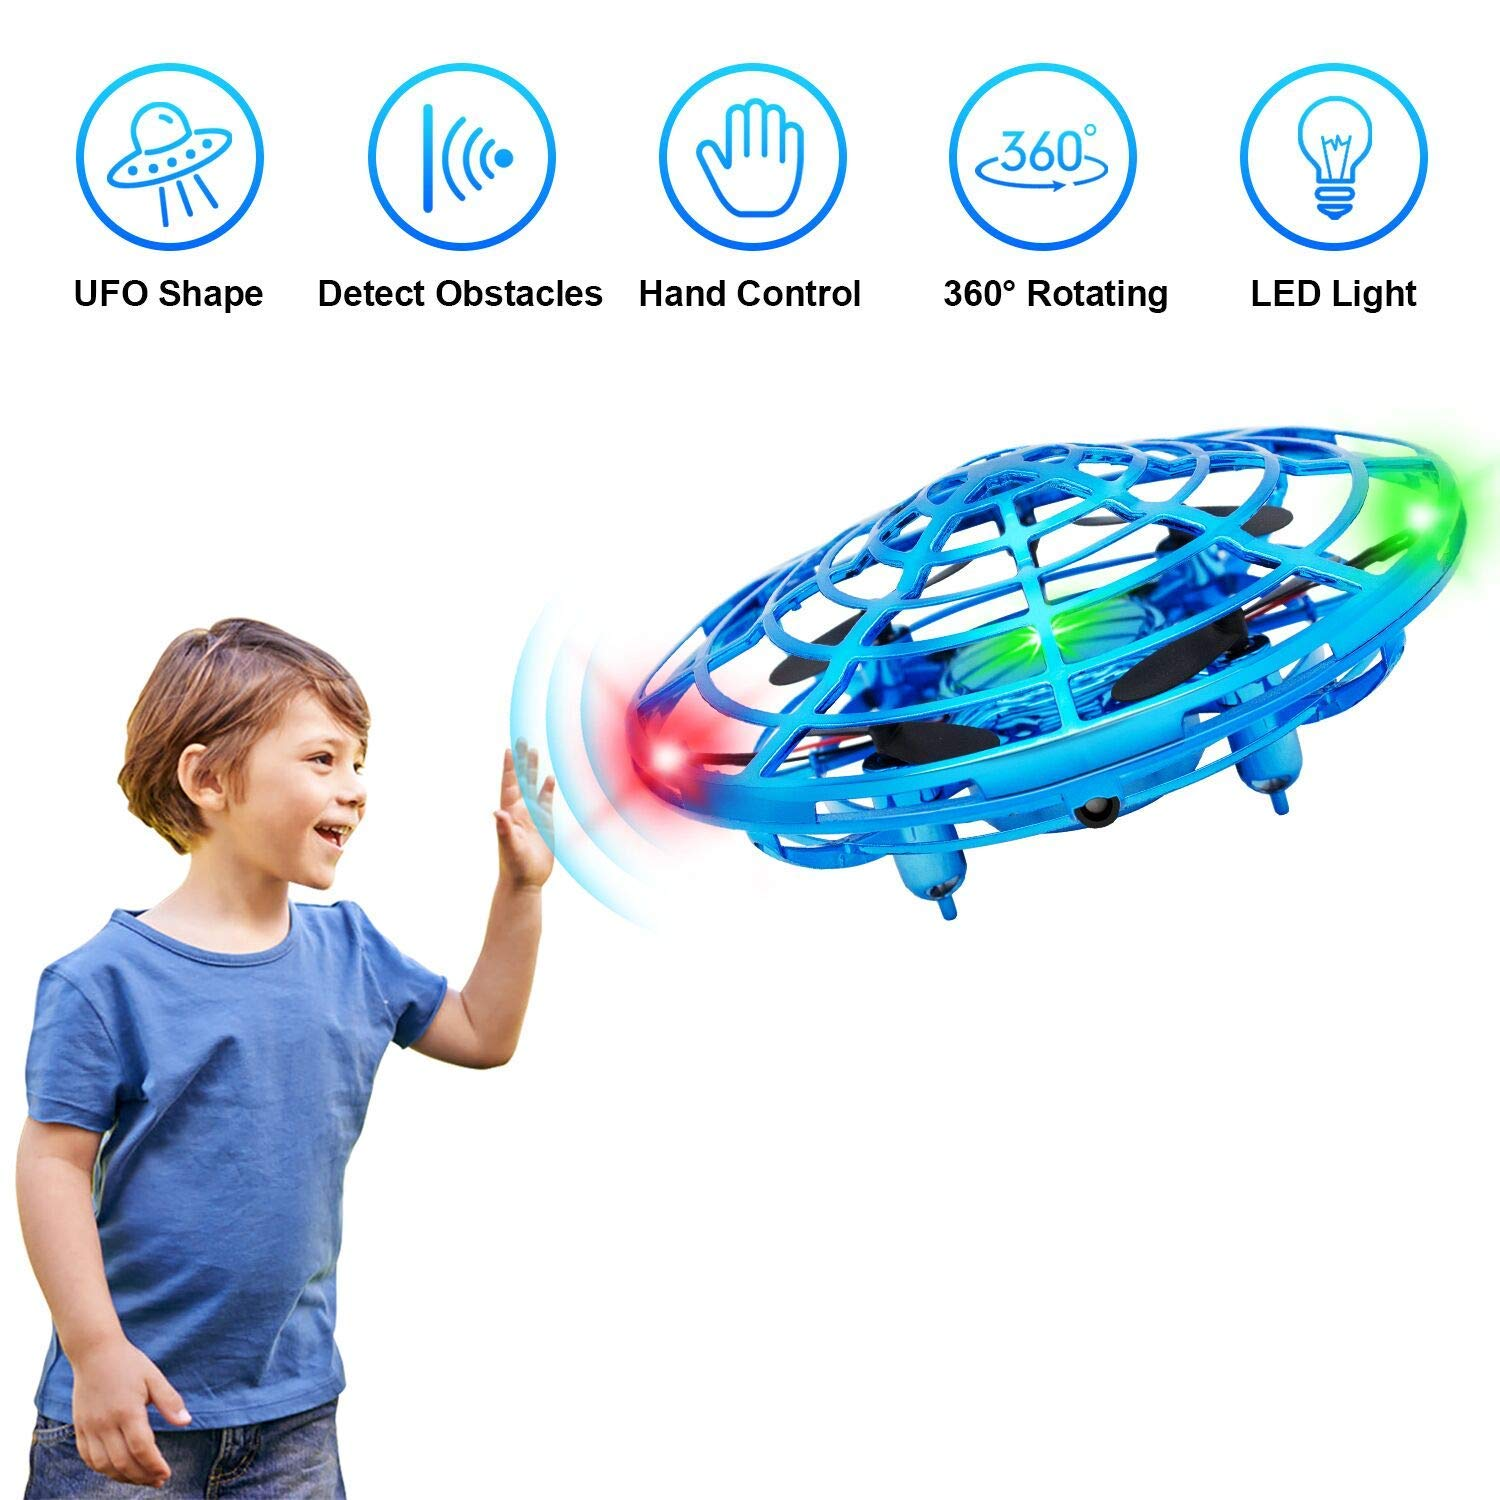 Flying Toys Drones for Kids, 2019 Improved Flying Ball Drone Toy with Infrared Sensor Auto-Avoid Obstacles 360°Rotating LED Light, Mini Quadcopter Hand Operated Drones for Boys or Girls by weird tails